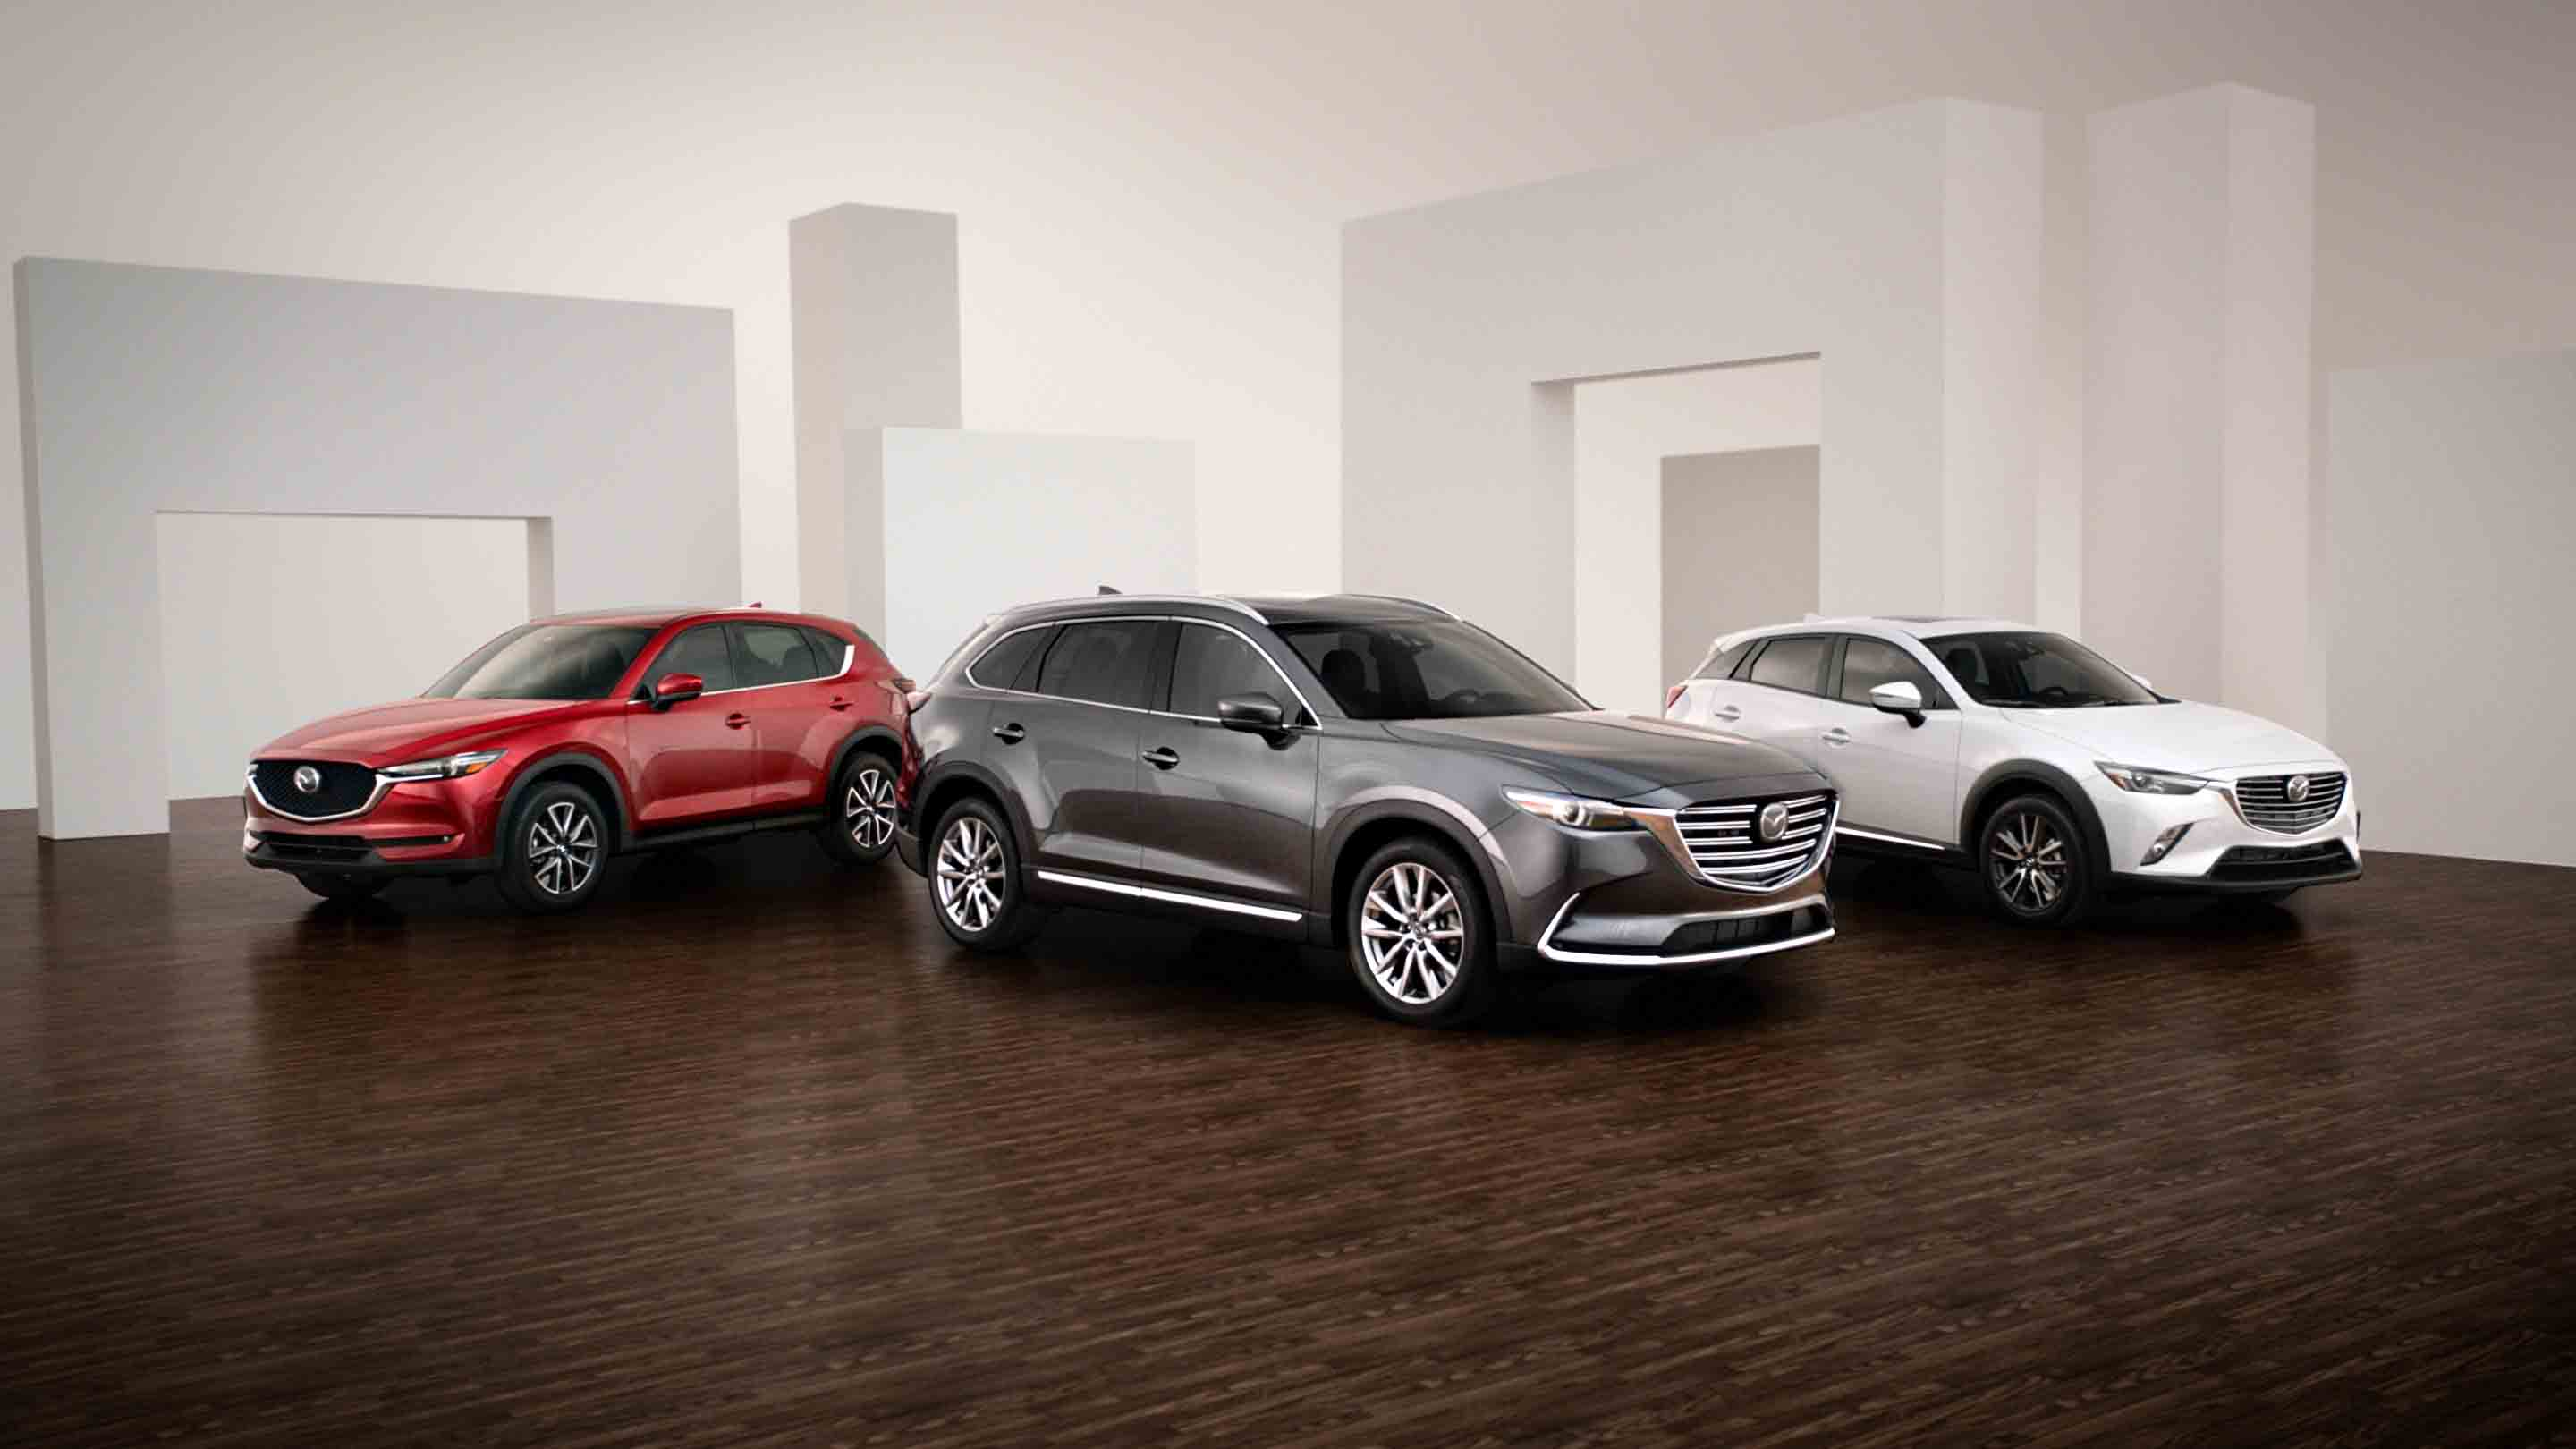 Mazda SUV available in Louisville, KY at Oxmoor Mazda